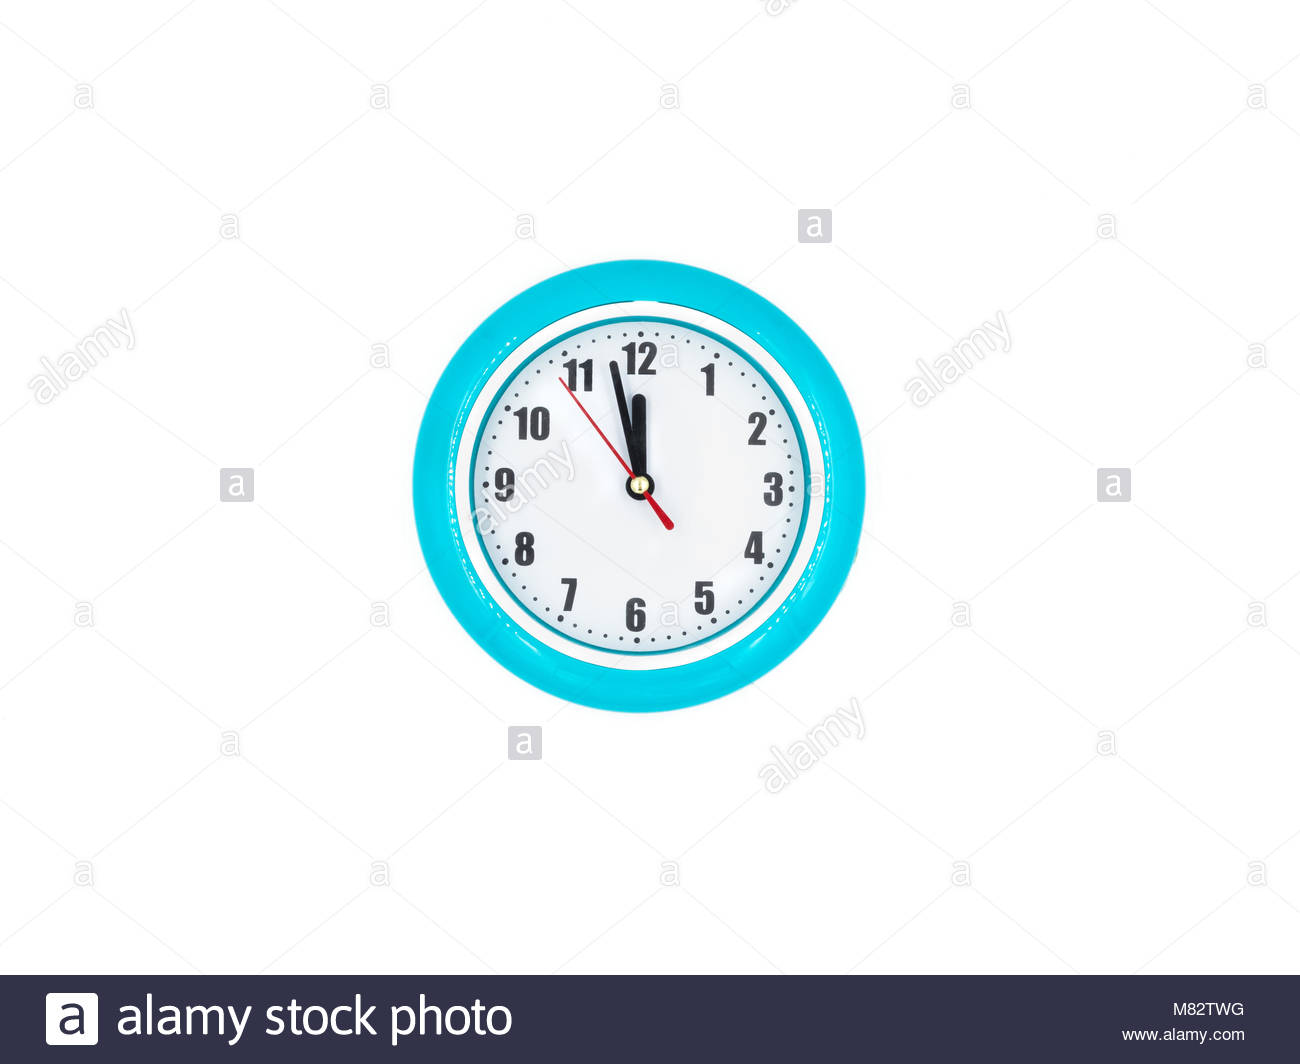 Blue wall clock on the white background, twelve o'clock - Stock Image